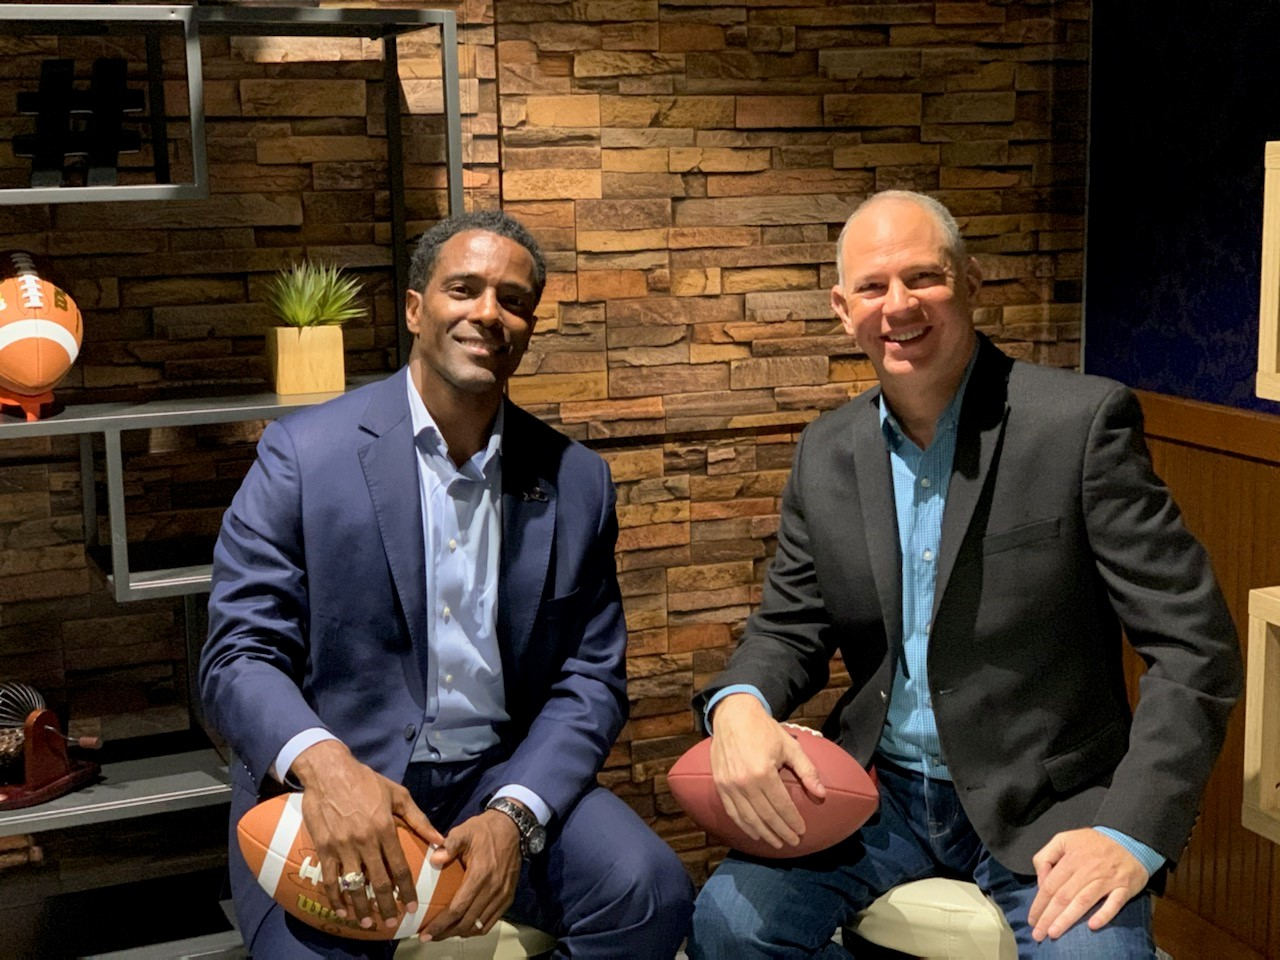 Jet It Founder and CEO, Glenn Gonzales (left), with Jet It partner, ESPN's Senior Fantasy Analyst, Matthew Berry (right).